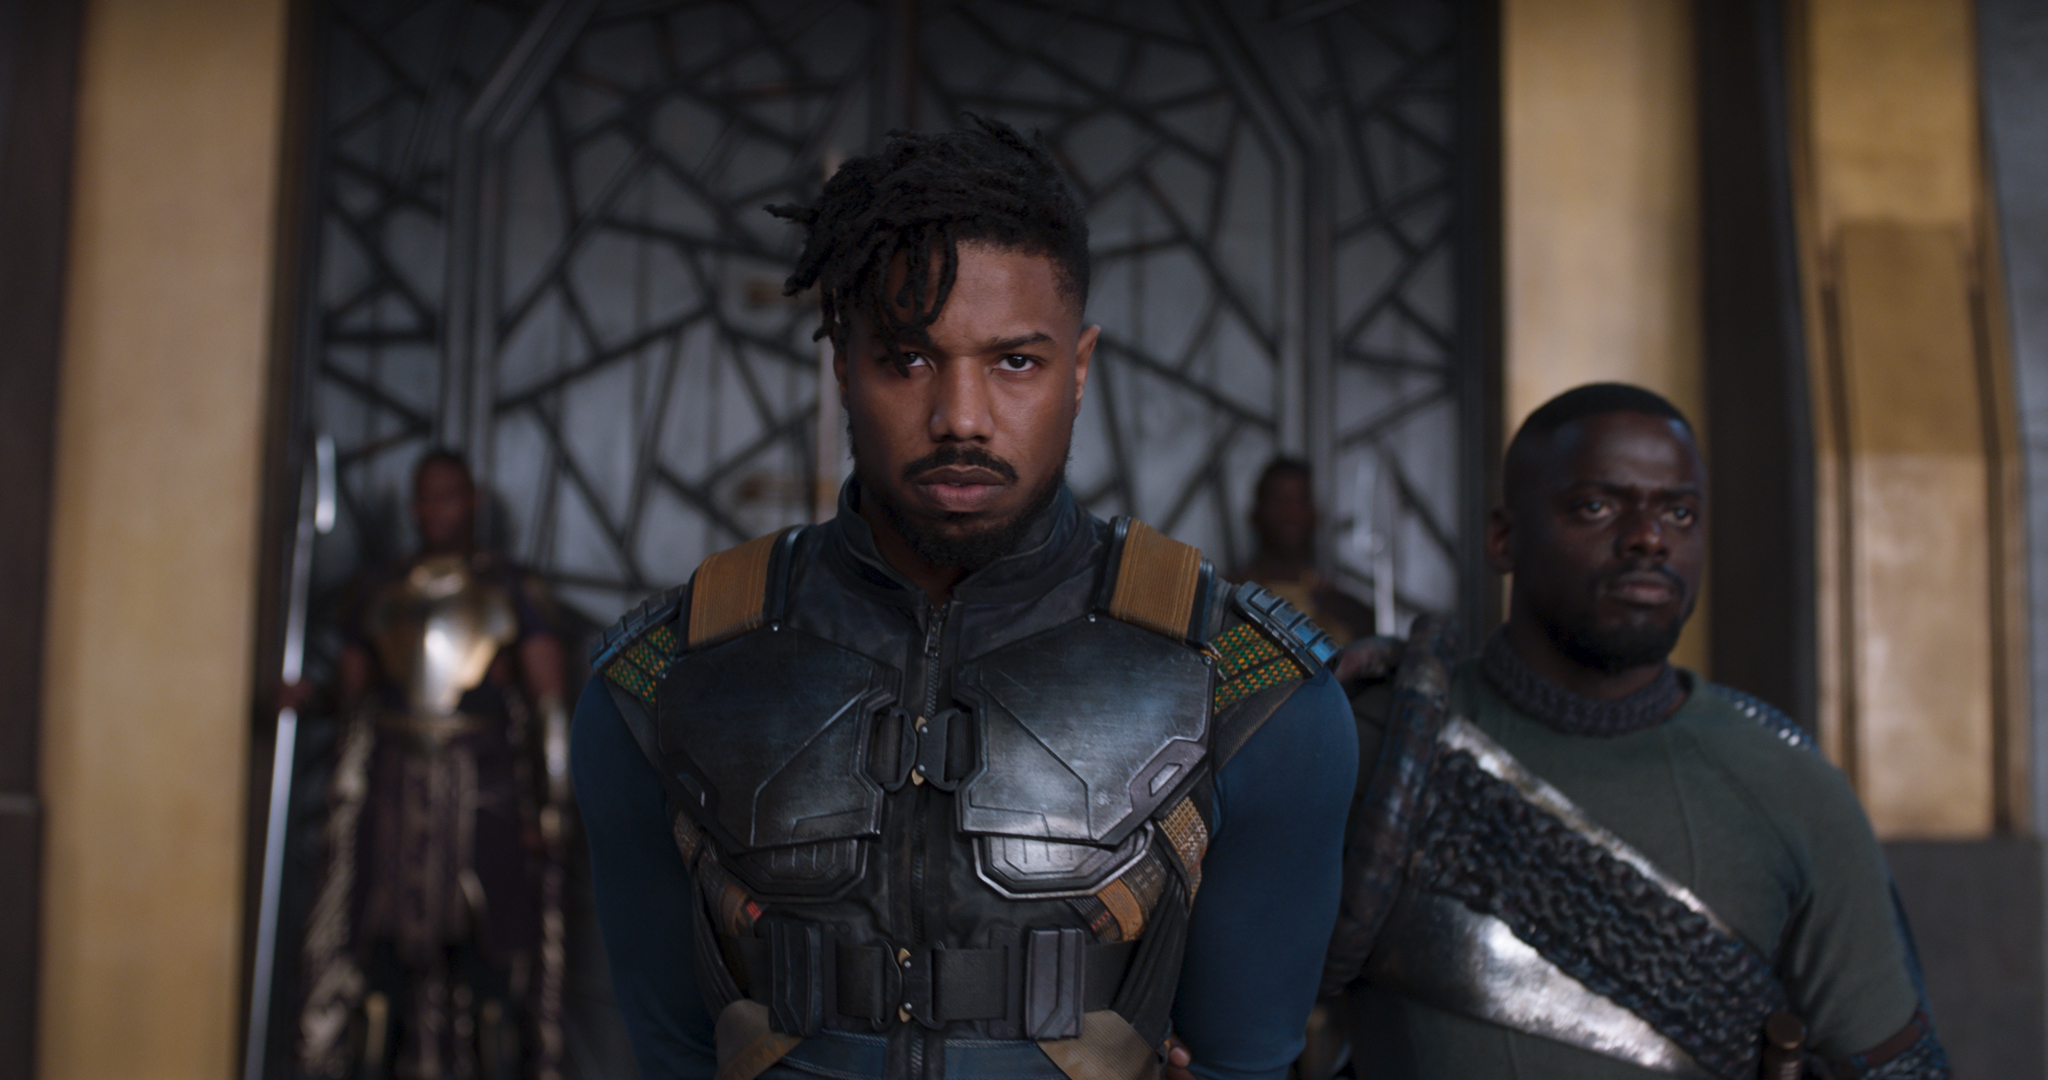 Ways Black Panther RESHAPED the Marvel Cinematic Universe